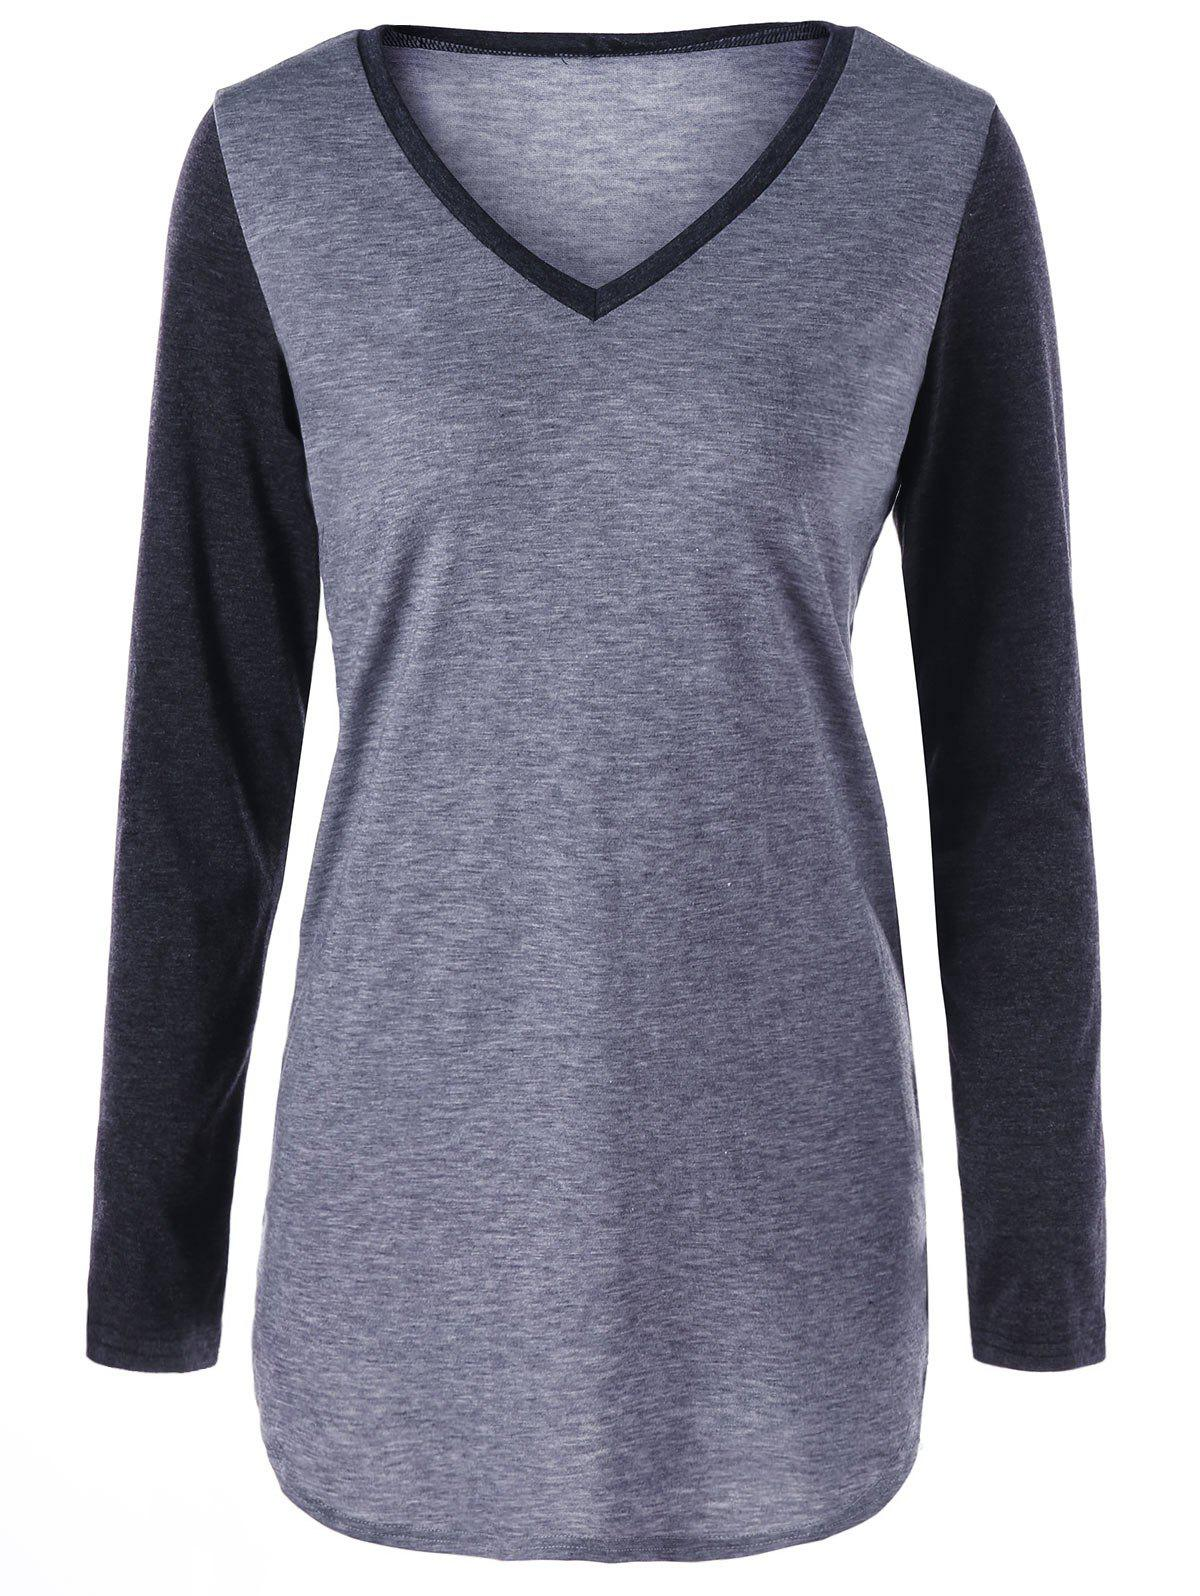 Trendy Two Tone V Neck Top